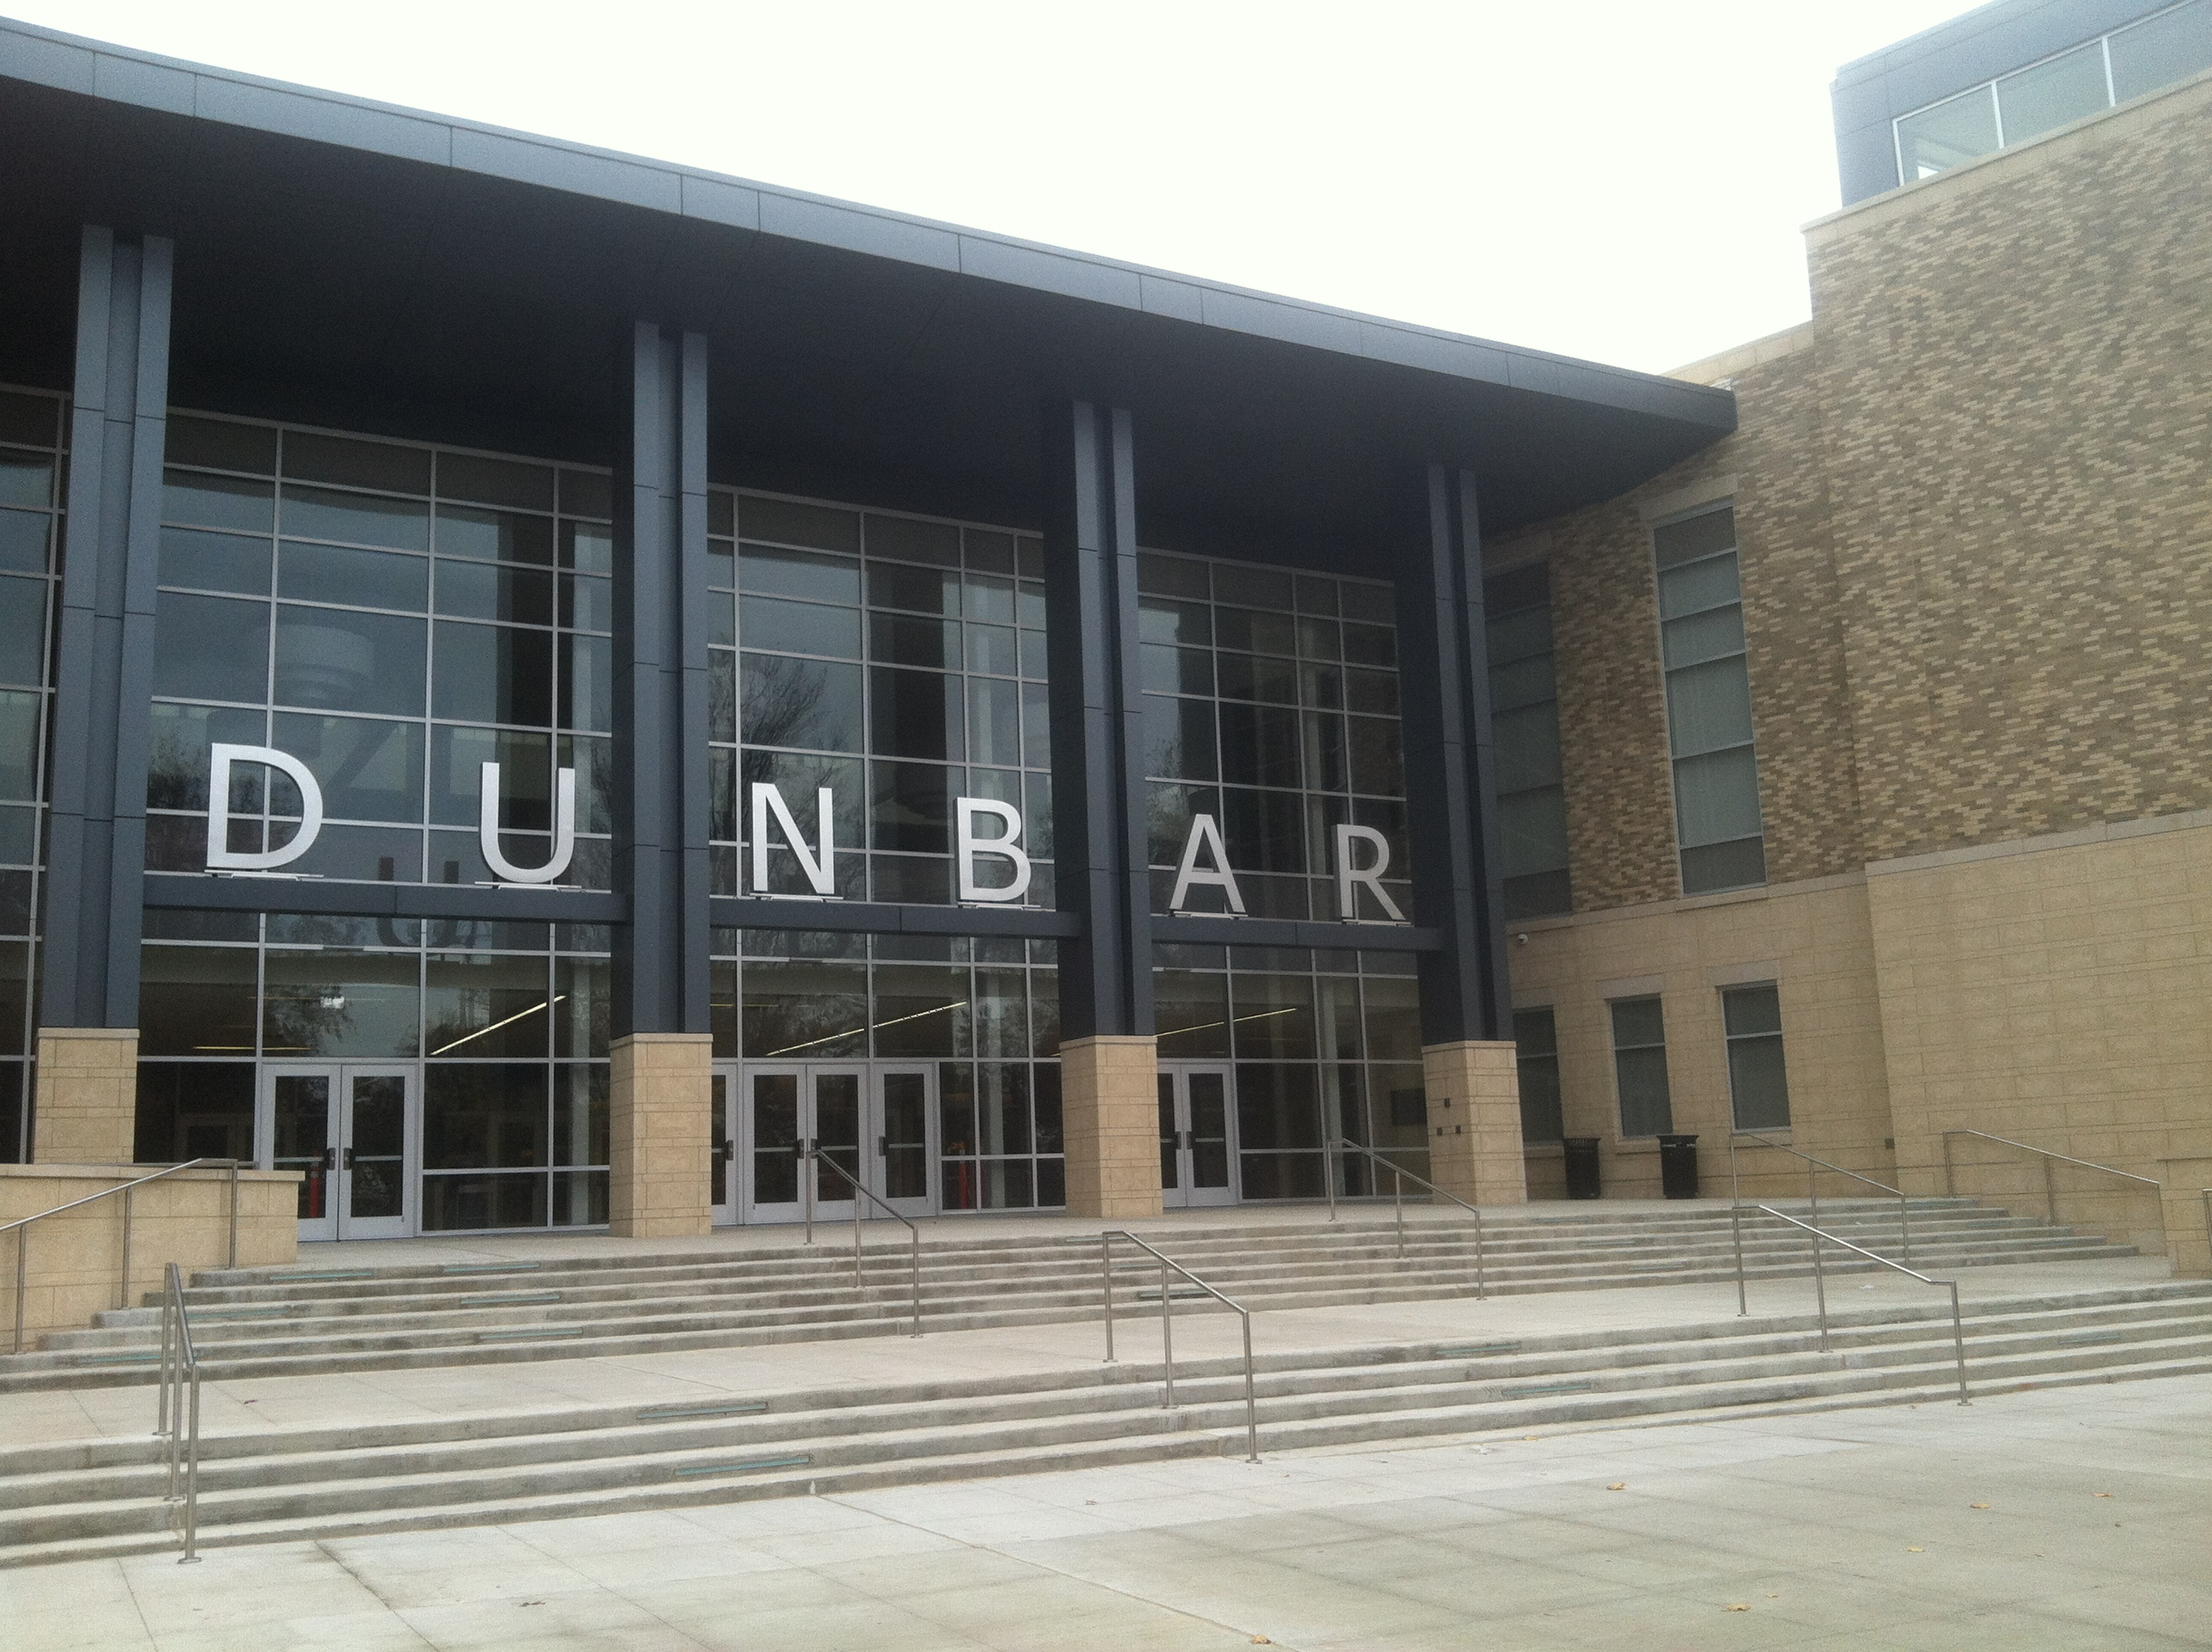 Dunbar High School DC (new building).jpg